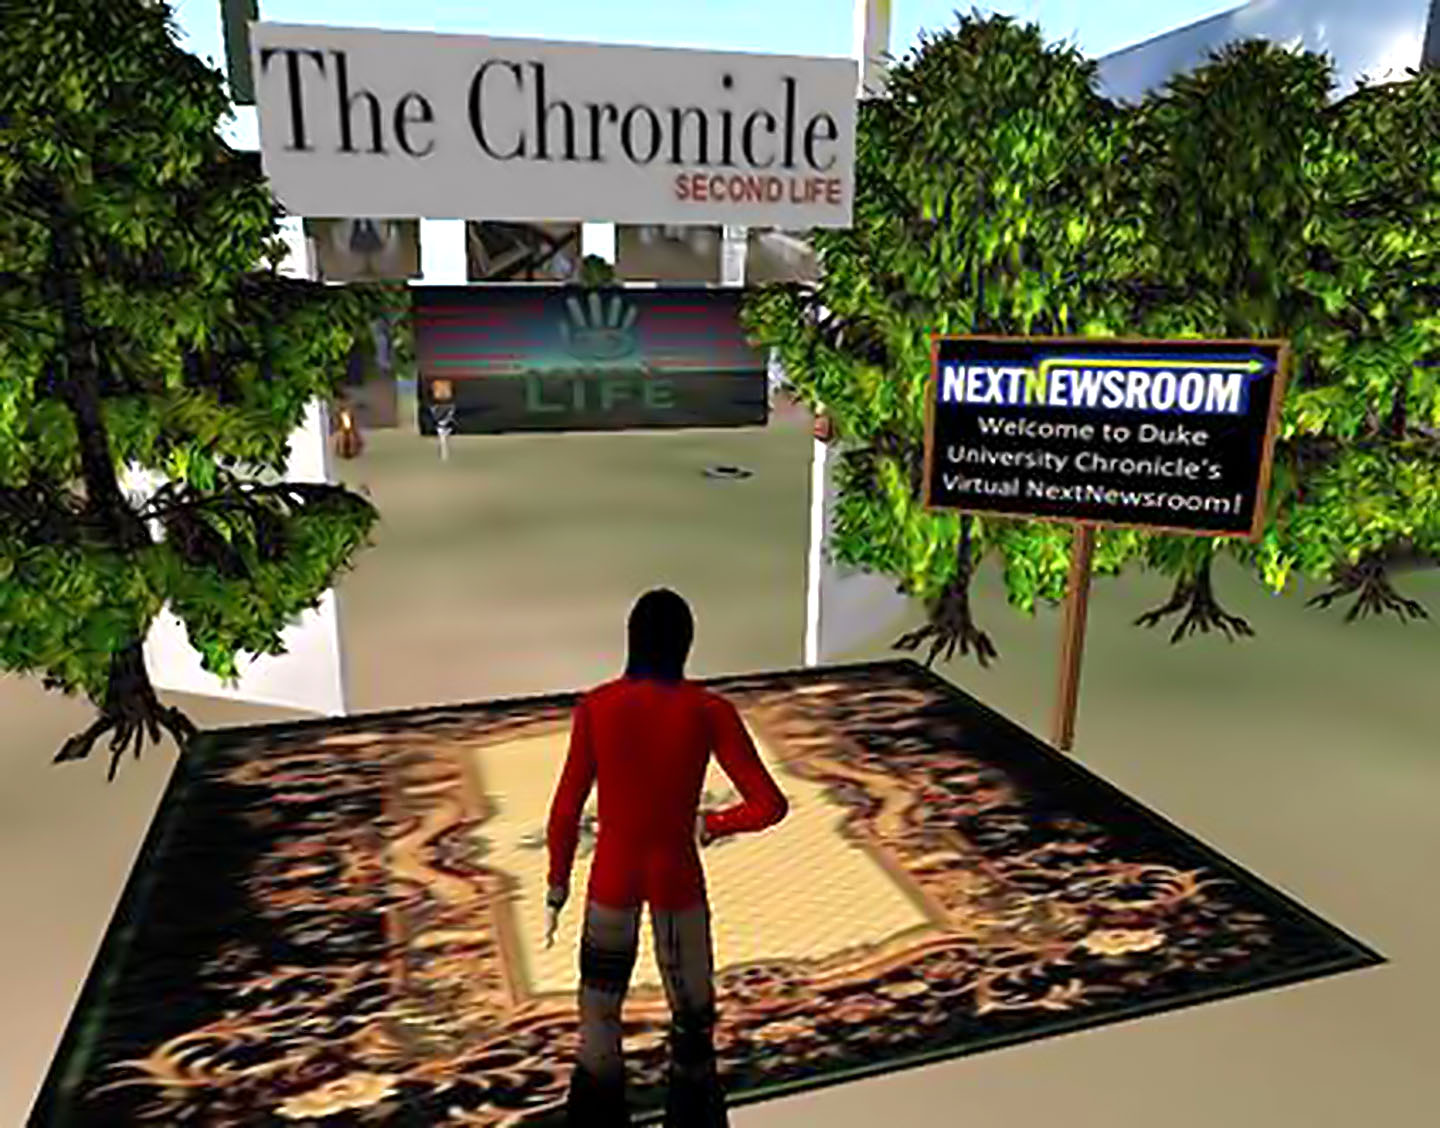 News in Second Life